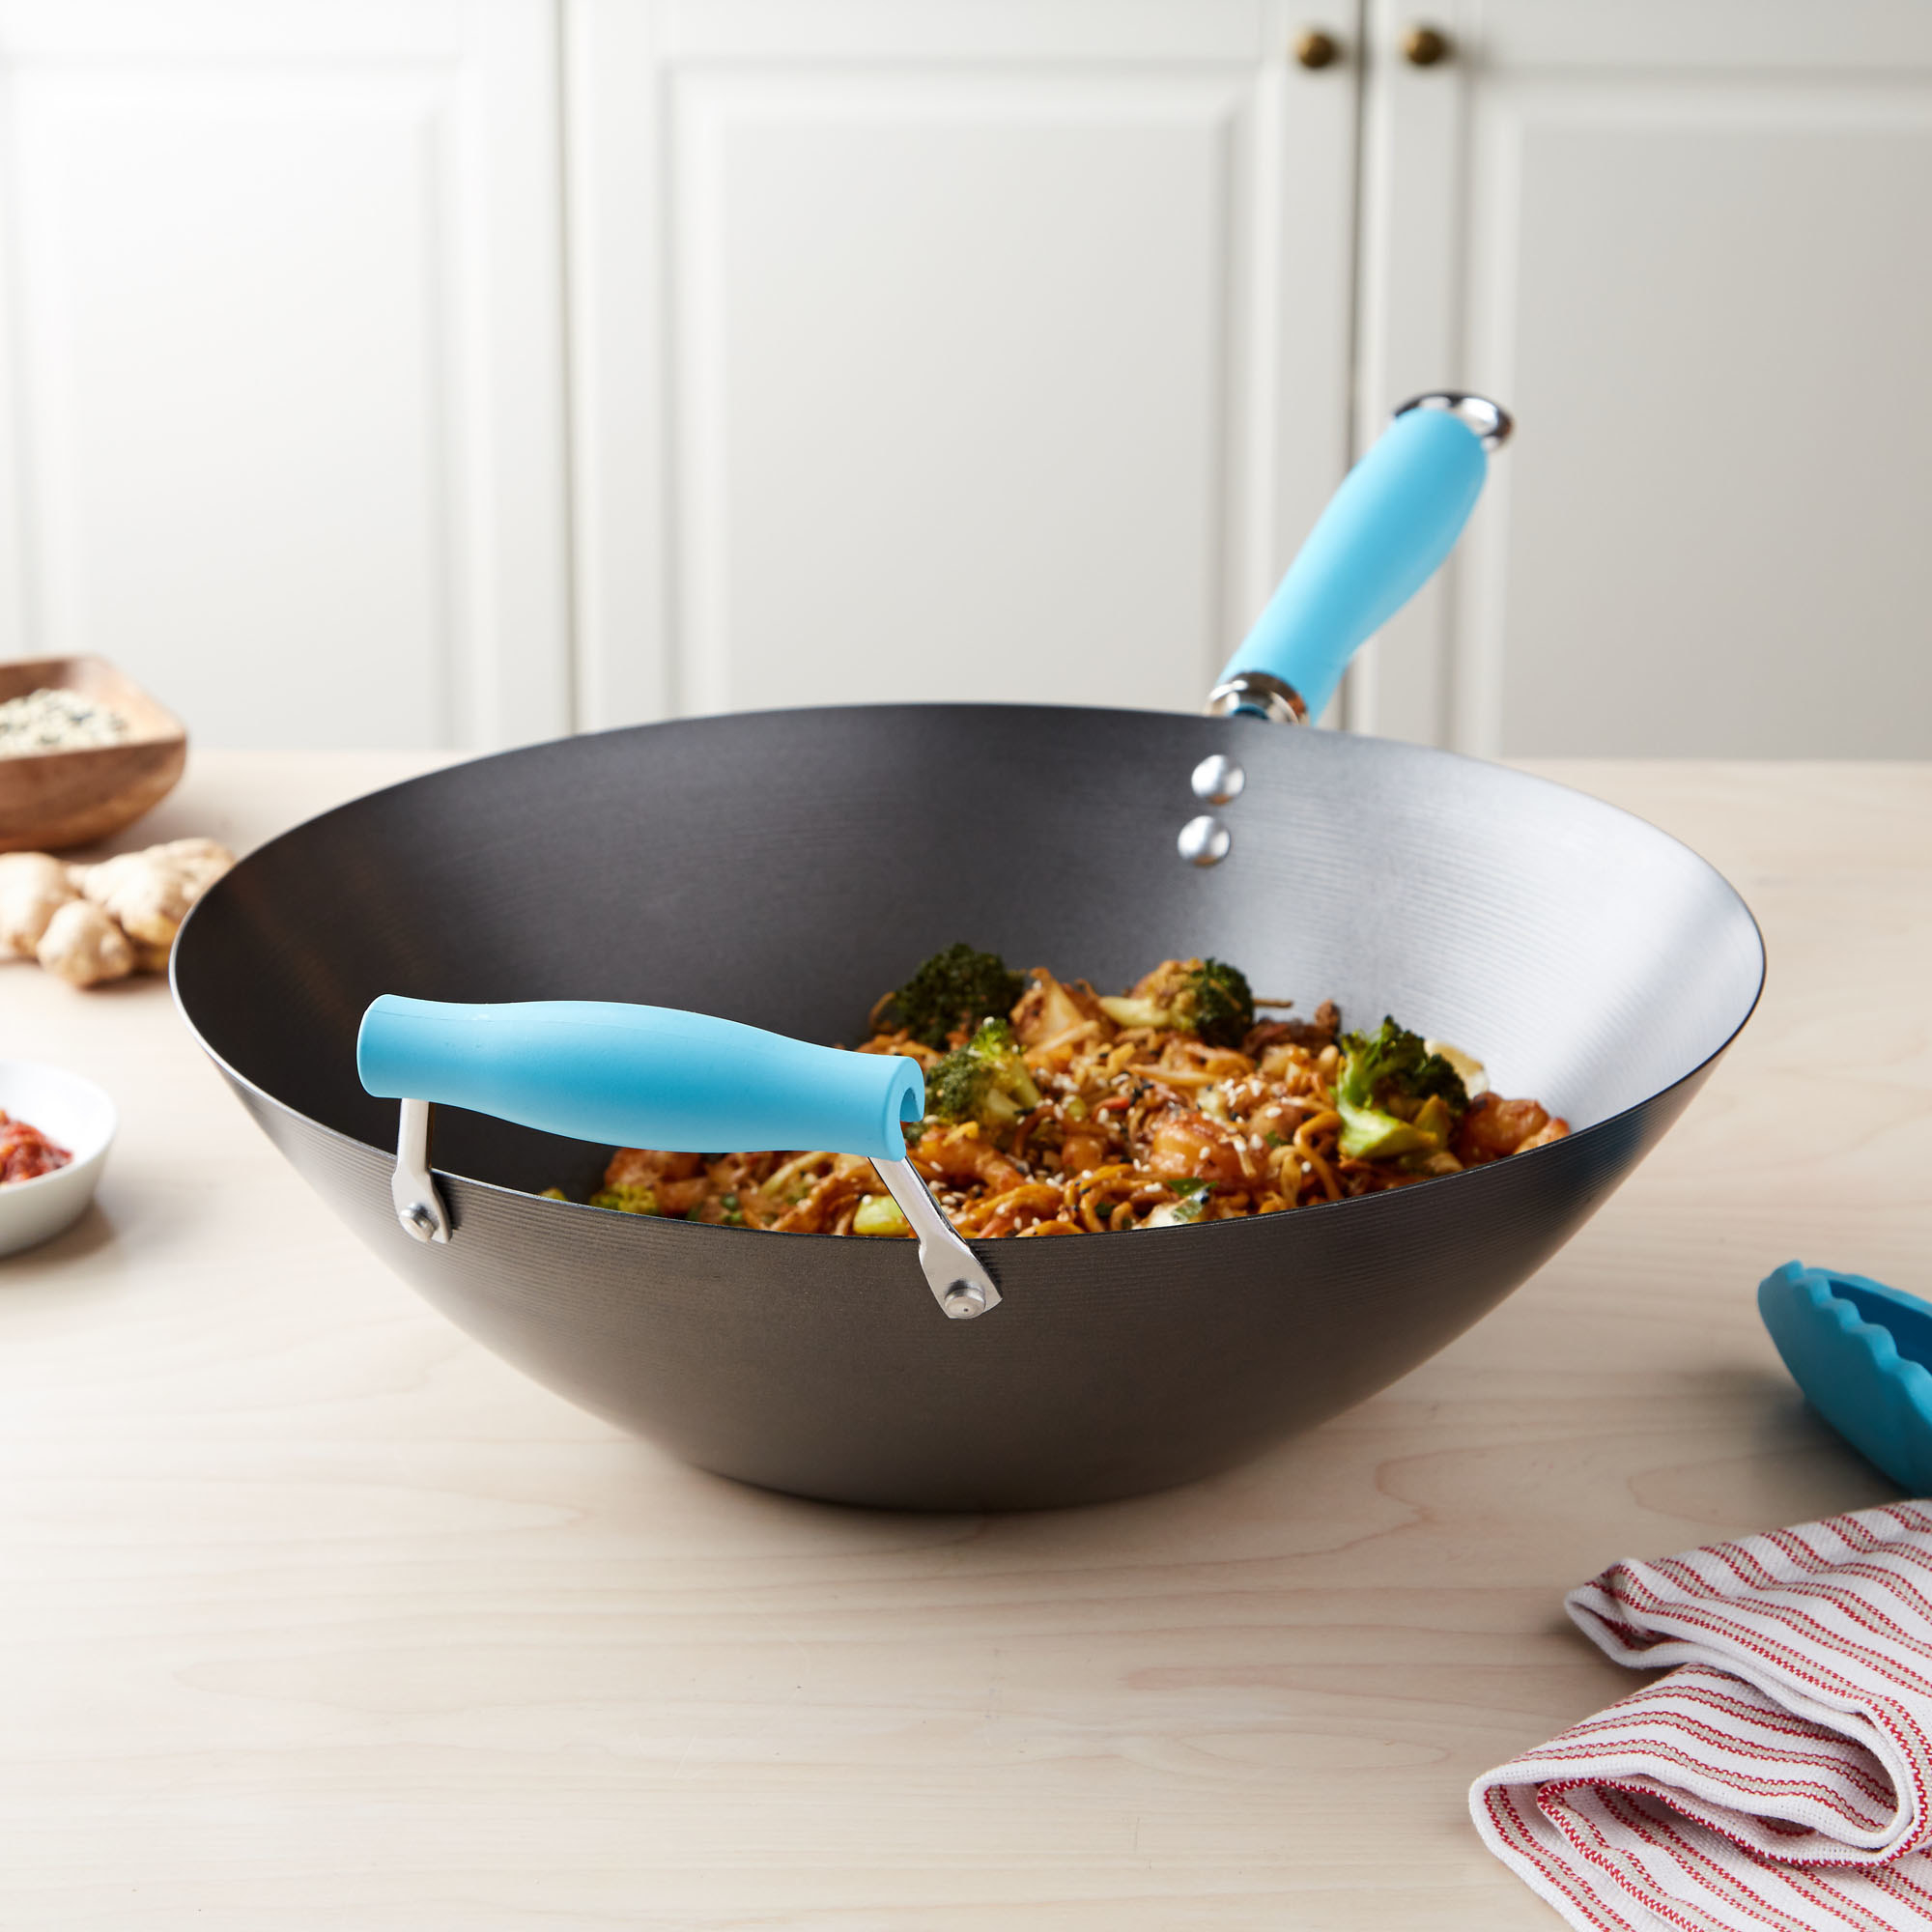 Product photo showing Tasty carbon steel 14'' non-stick wok with helper handle in blue